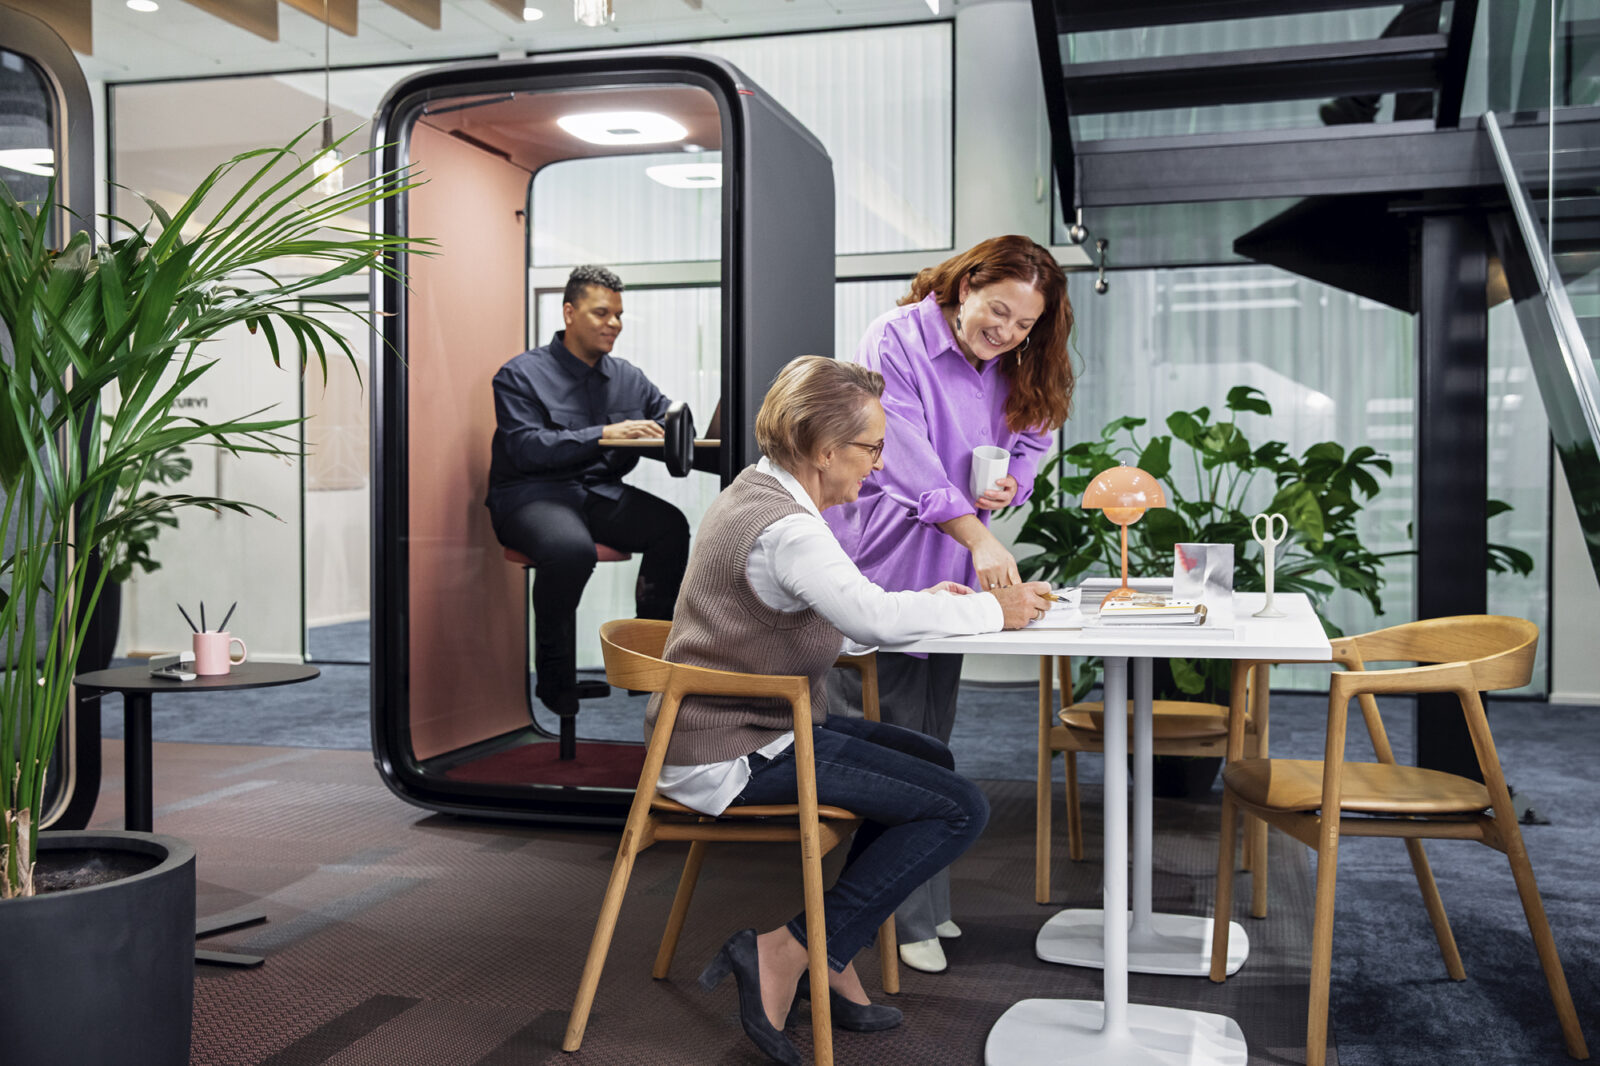 Framery office soundproof phone booth, privacy pod, soundproof booth, solo pod, connected pod, individual work in loud office